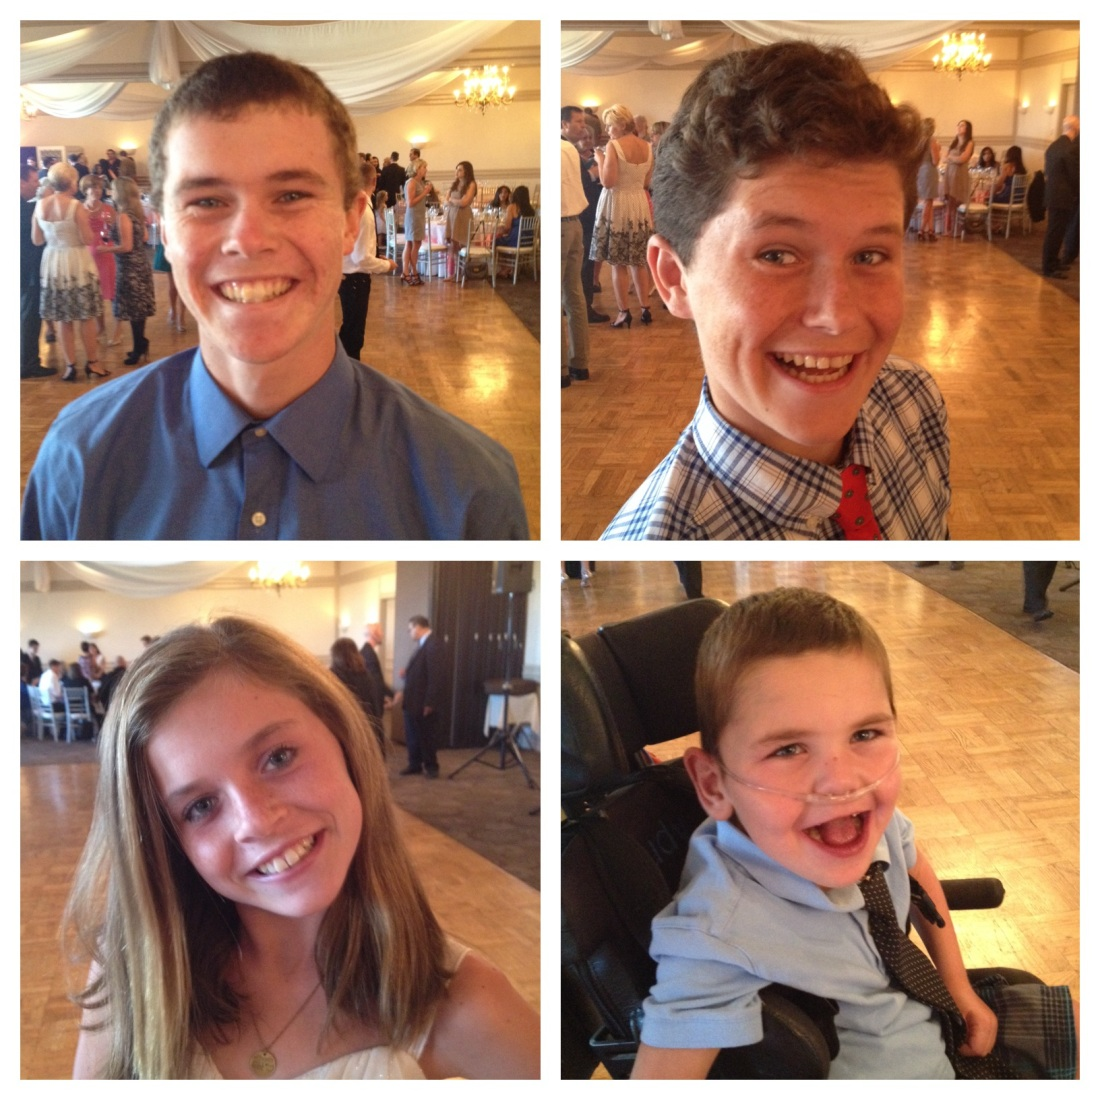 Last but not least, we cleaned up again for Amy and Andrea's wedding…everyone was all smiles and READY TO PARTY!!!